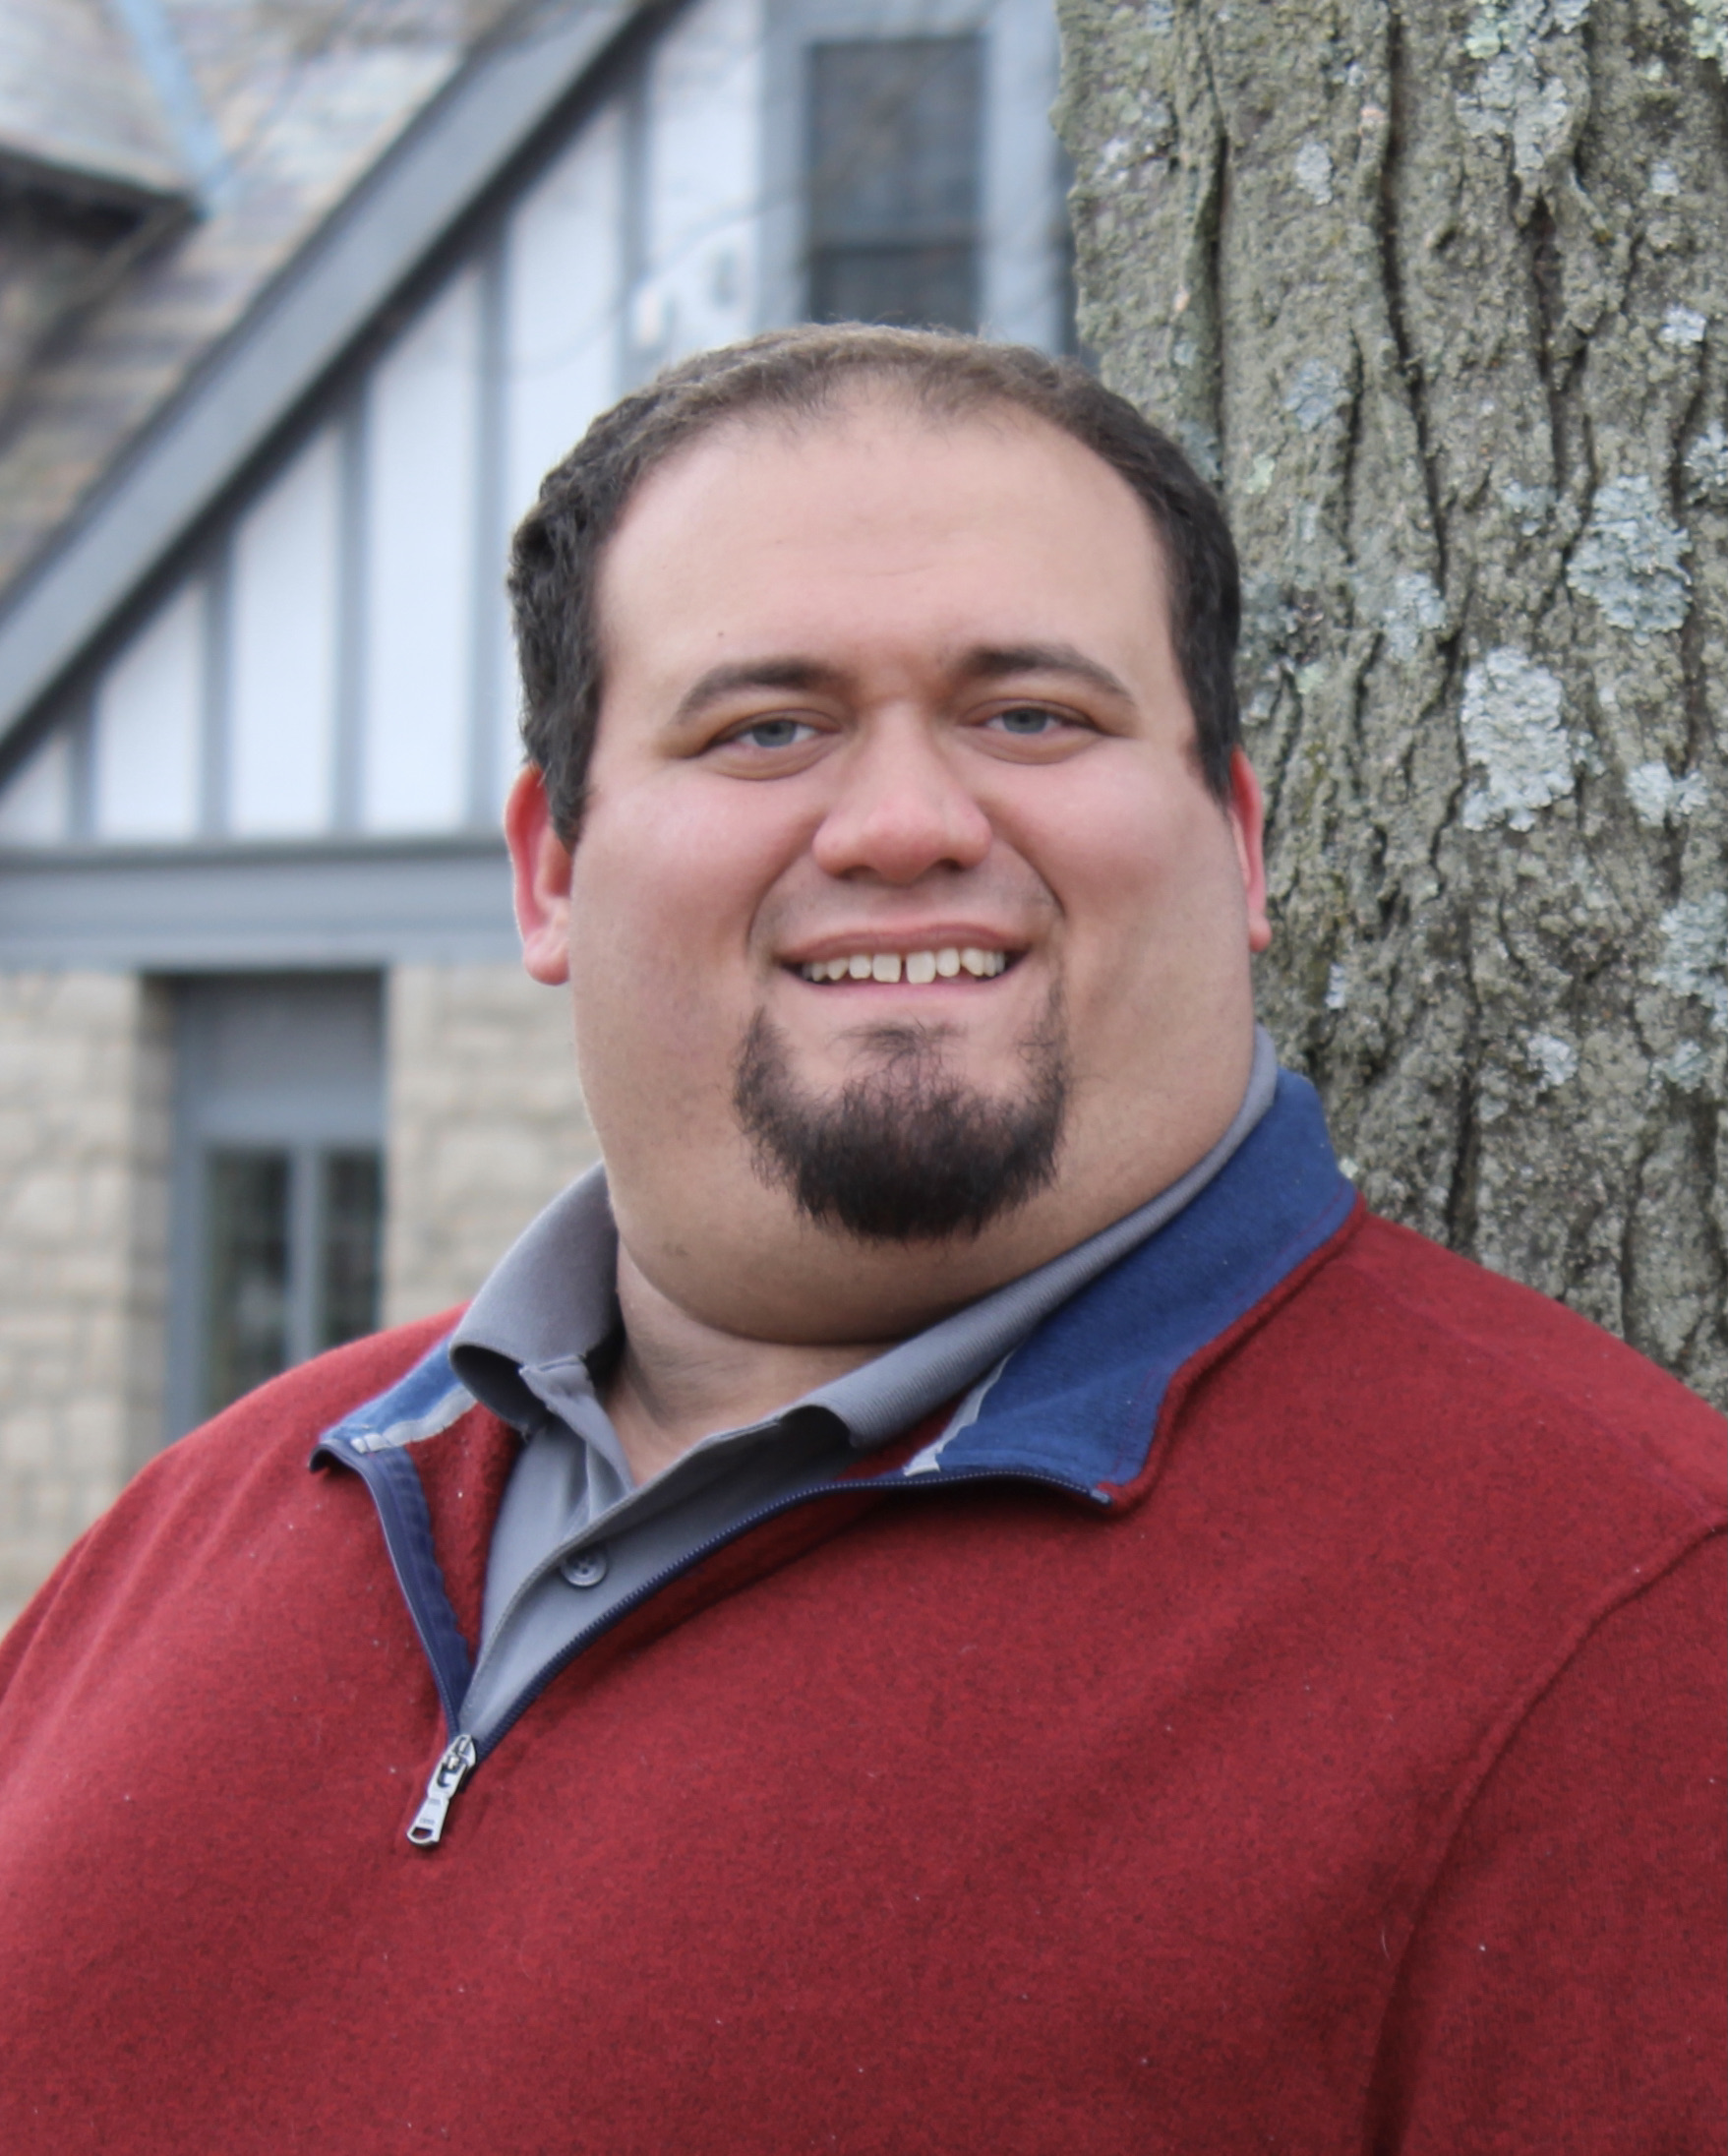 Michael Glover, LPC, Licensed Professional Counselor in Saint Louis, MO